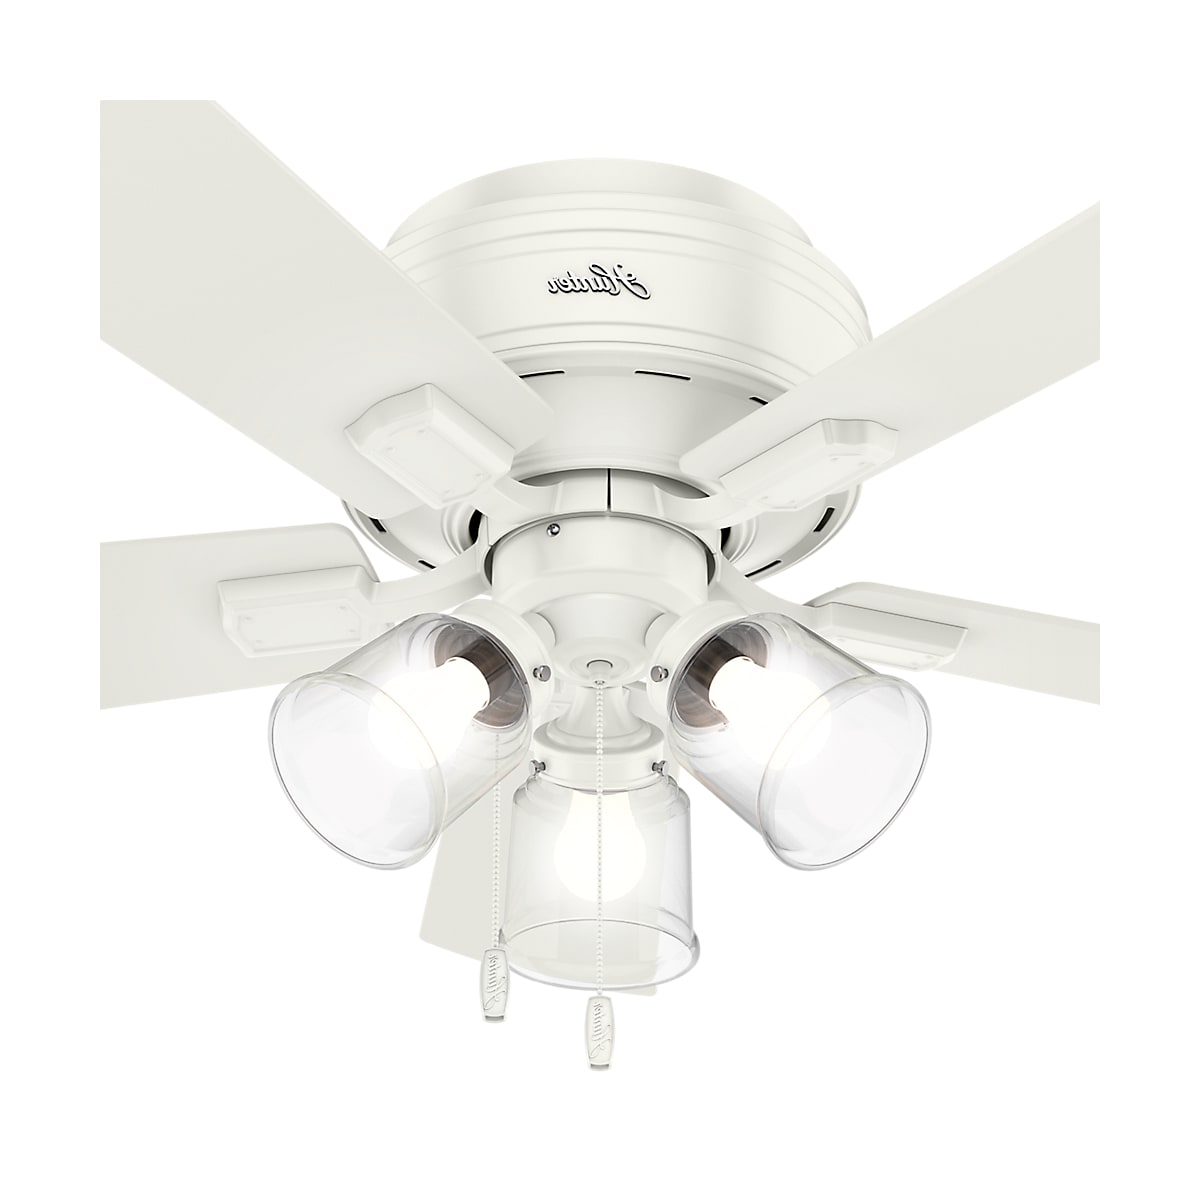 Hunter Crestfield 42 Led Low Profile For Favorite Crestfield 5 Blade Ceiling Fans (View 13 of 20)